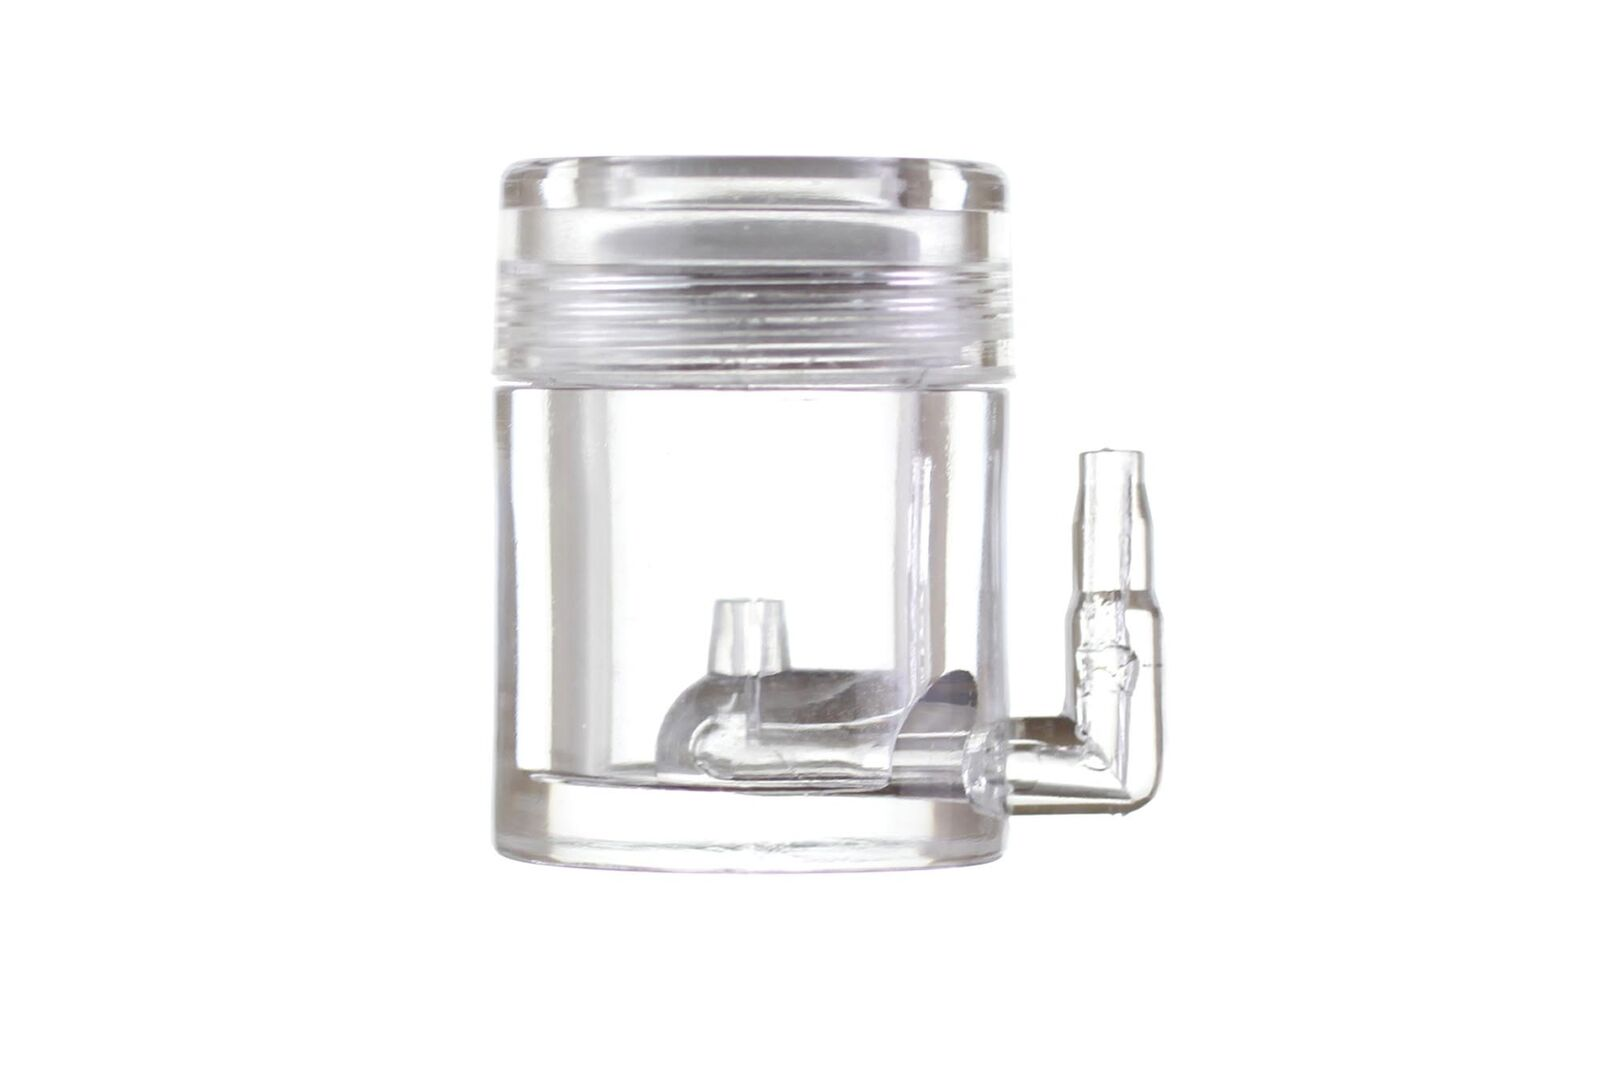 Acrylic CO2 Diffuser - Large for Aquariums up to 150L